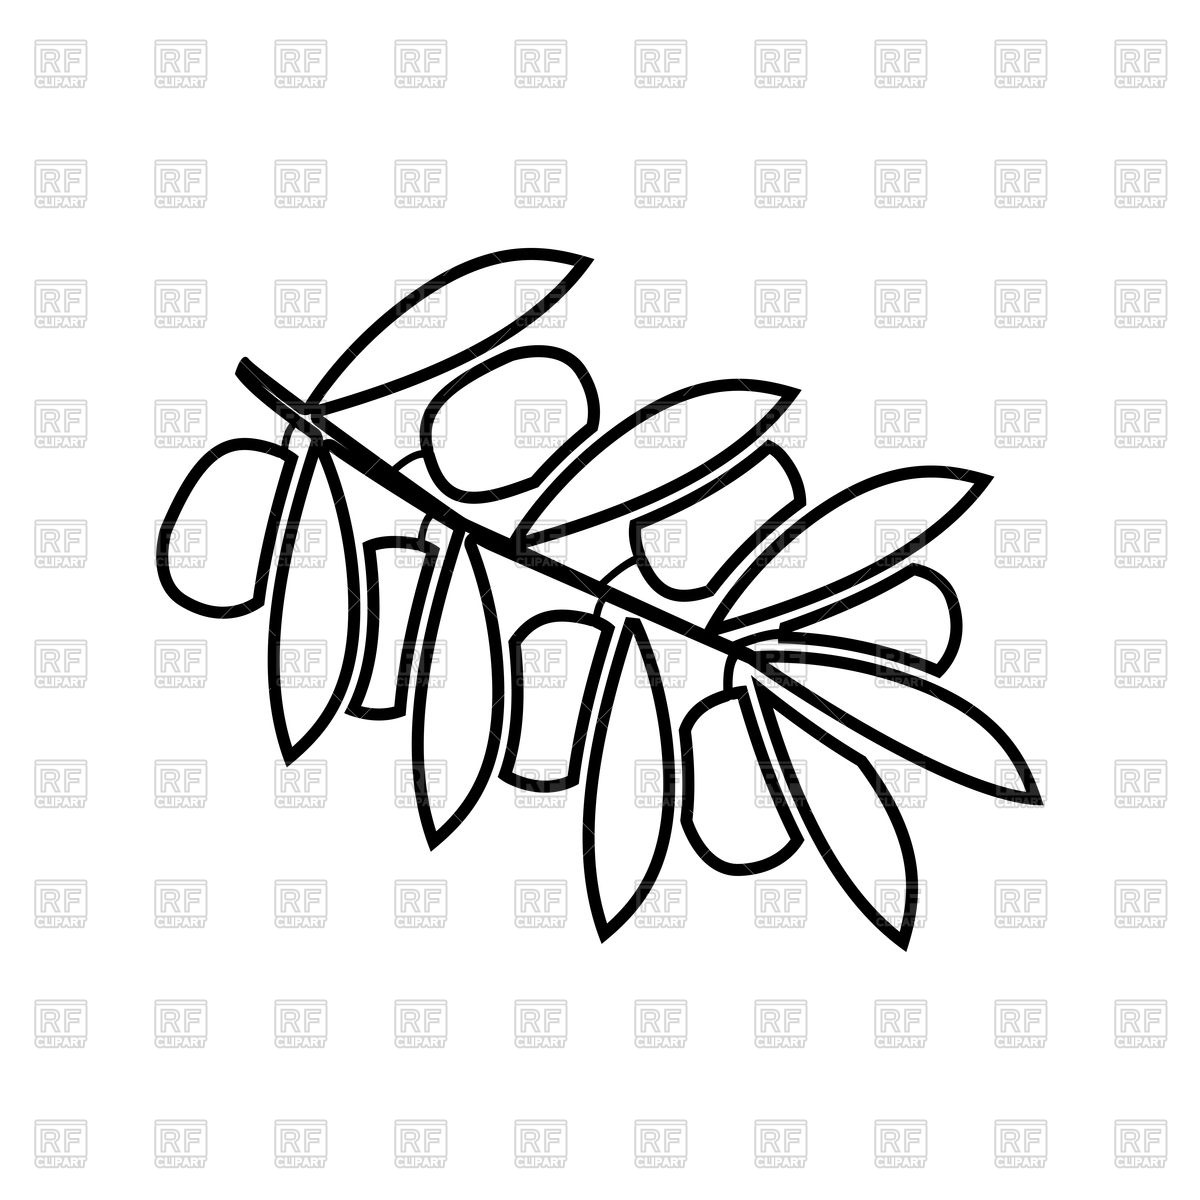 1200x1200 Olive Branch Outline Vector Image Vector Artwork Of Objects